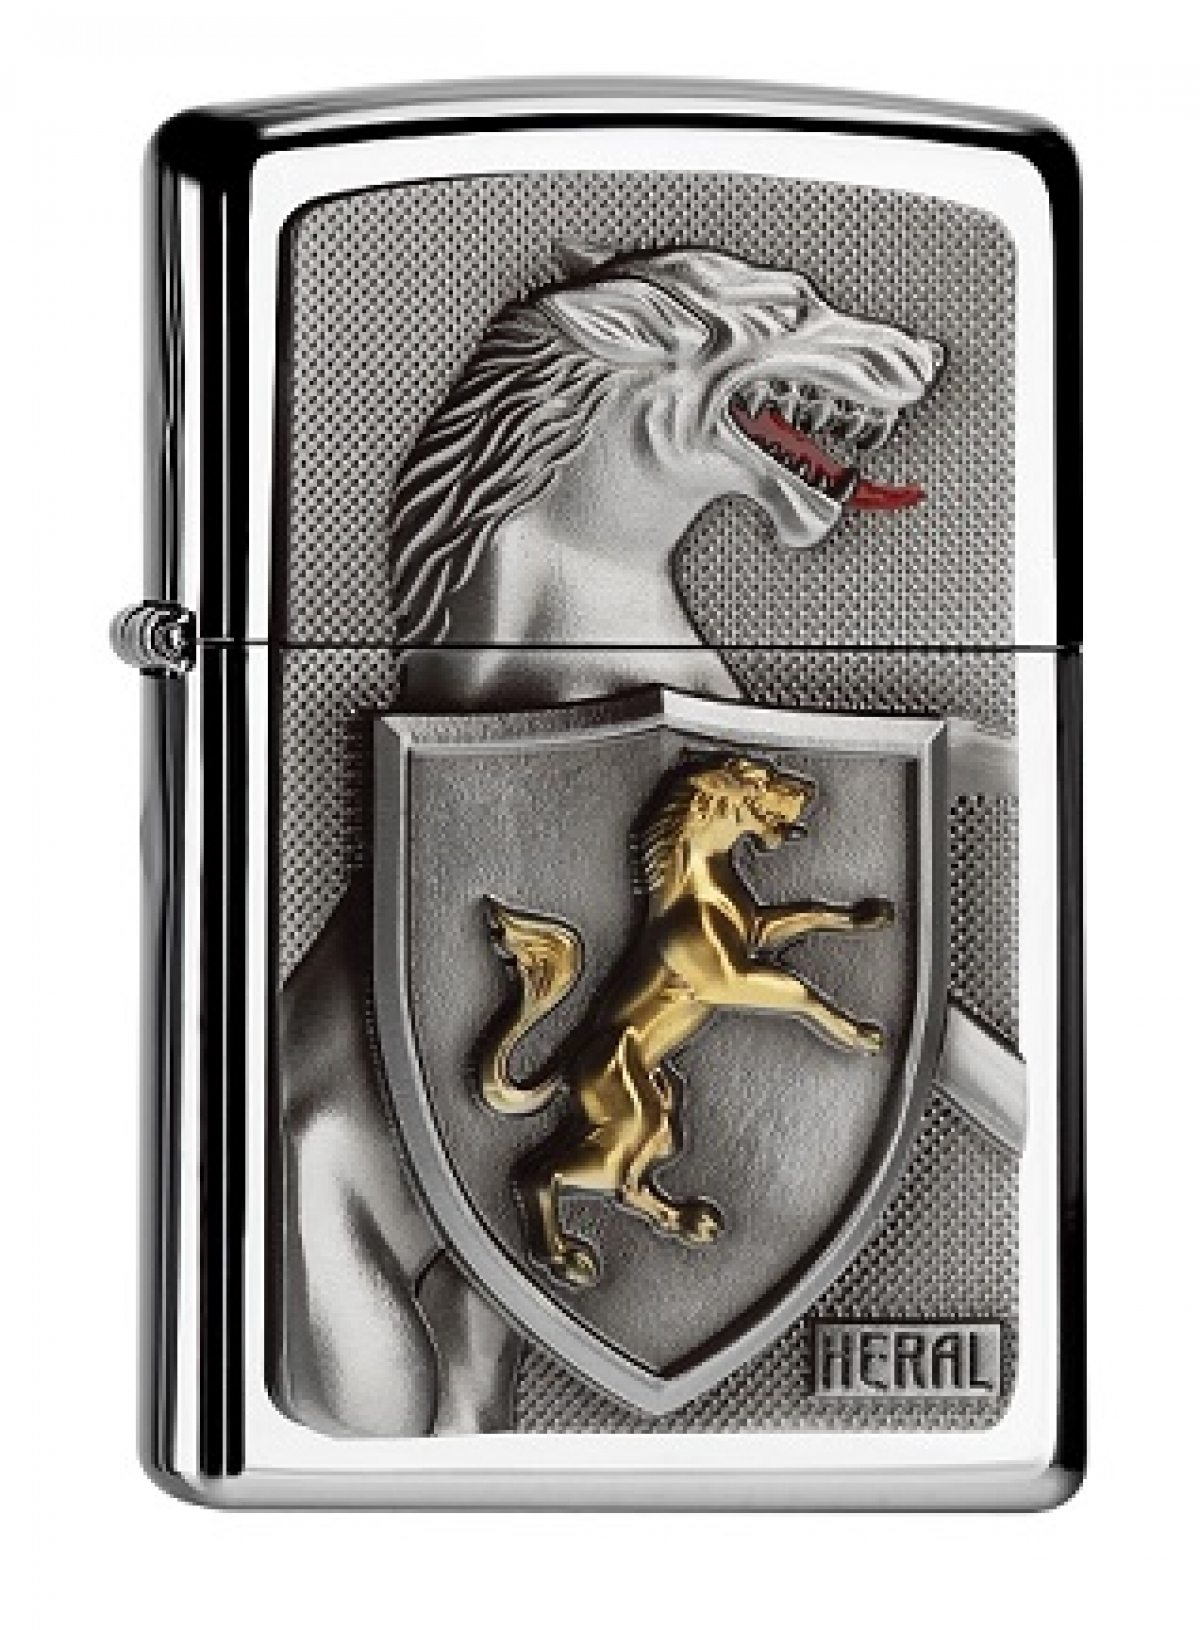 Zippo Lighter Heral Walo Limited Edition 2004540